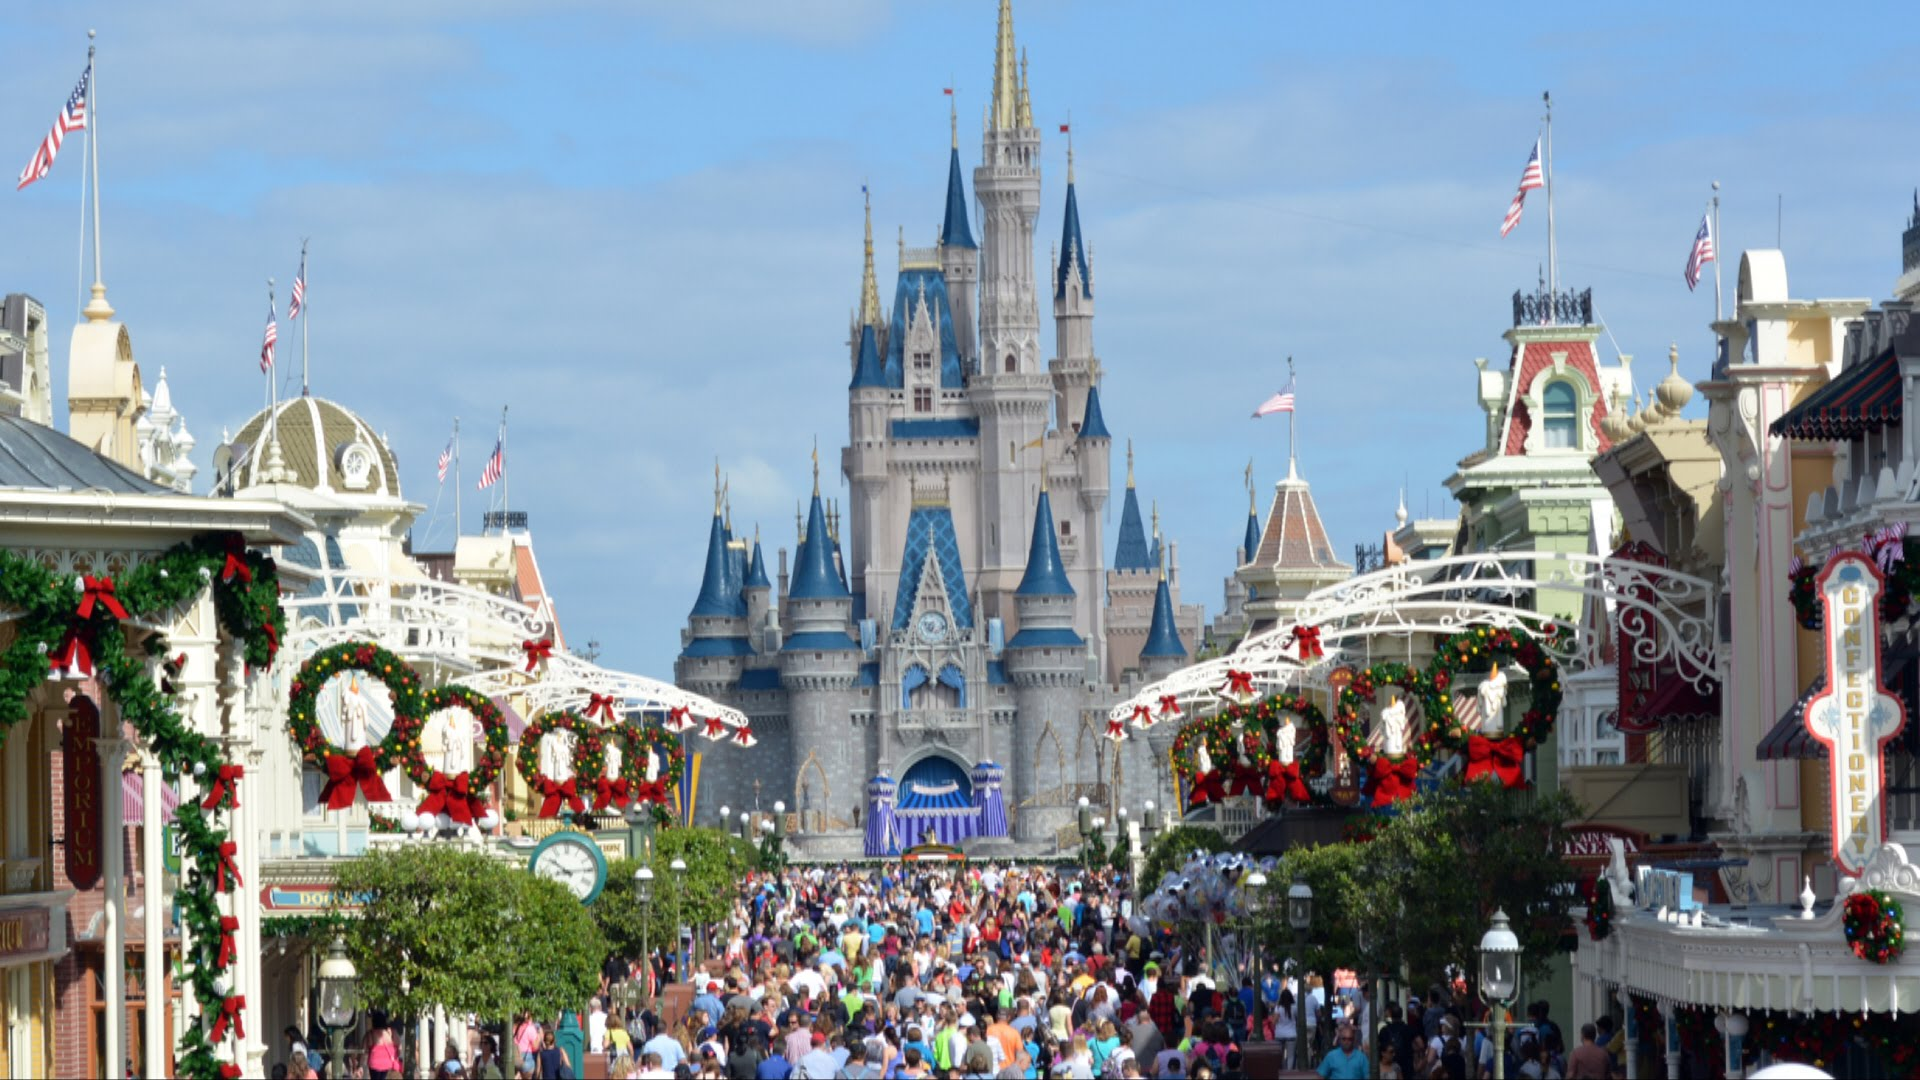 Christmas Holiday Decorations at The Magic Kingdom 2014 Including New 1920x1080